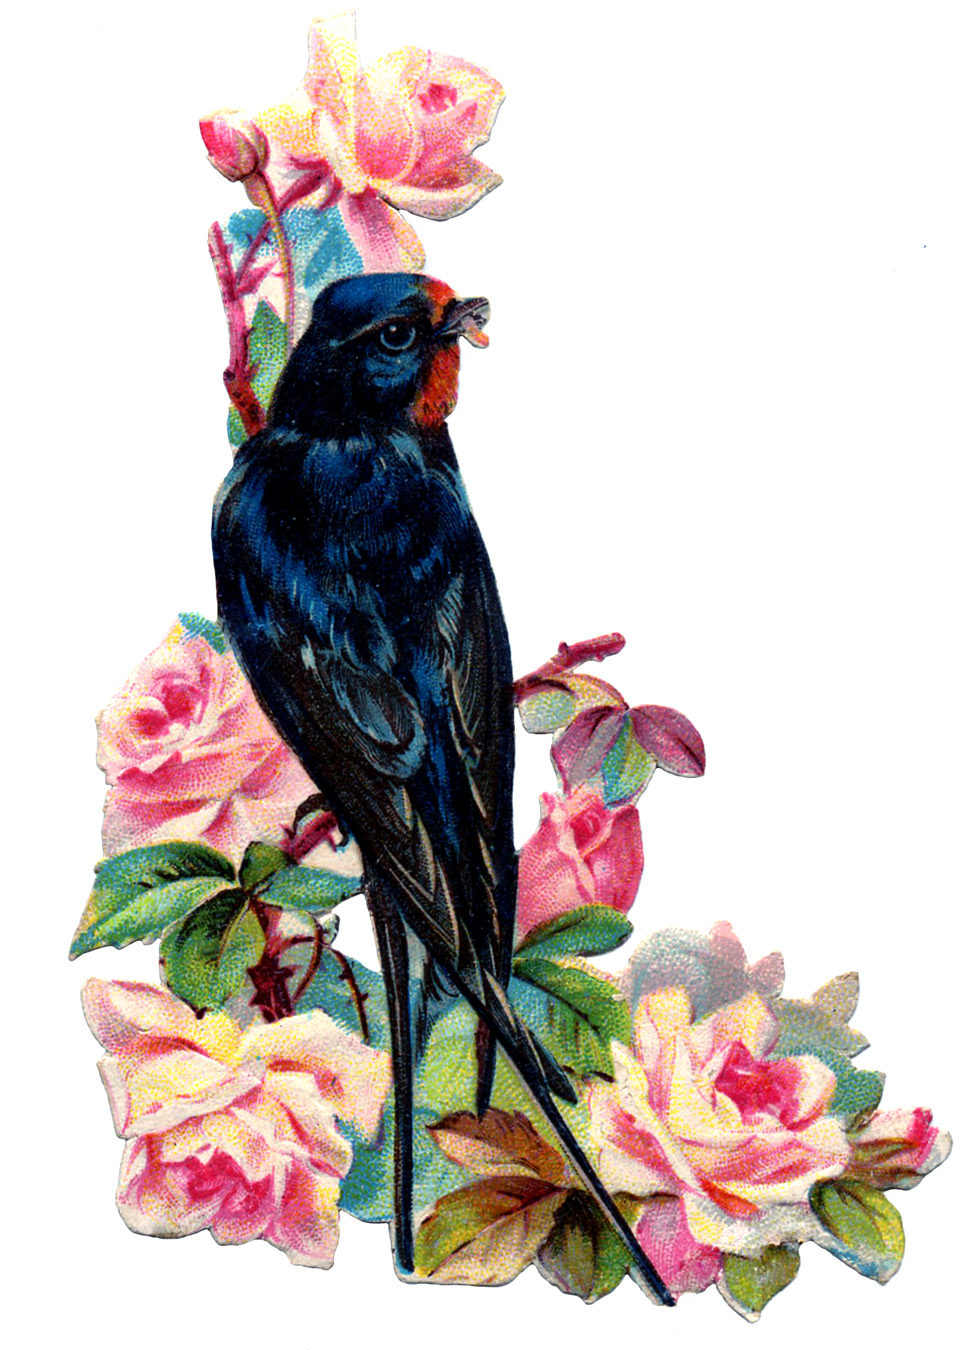 birds+and+flowers+vintage+image+graphicsfairy4b